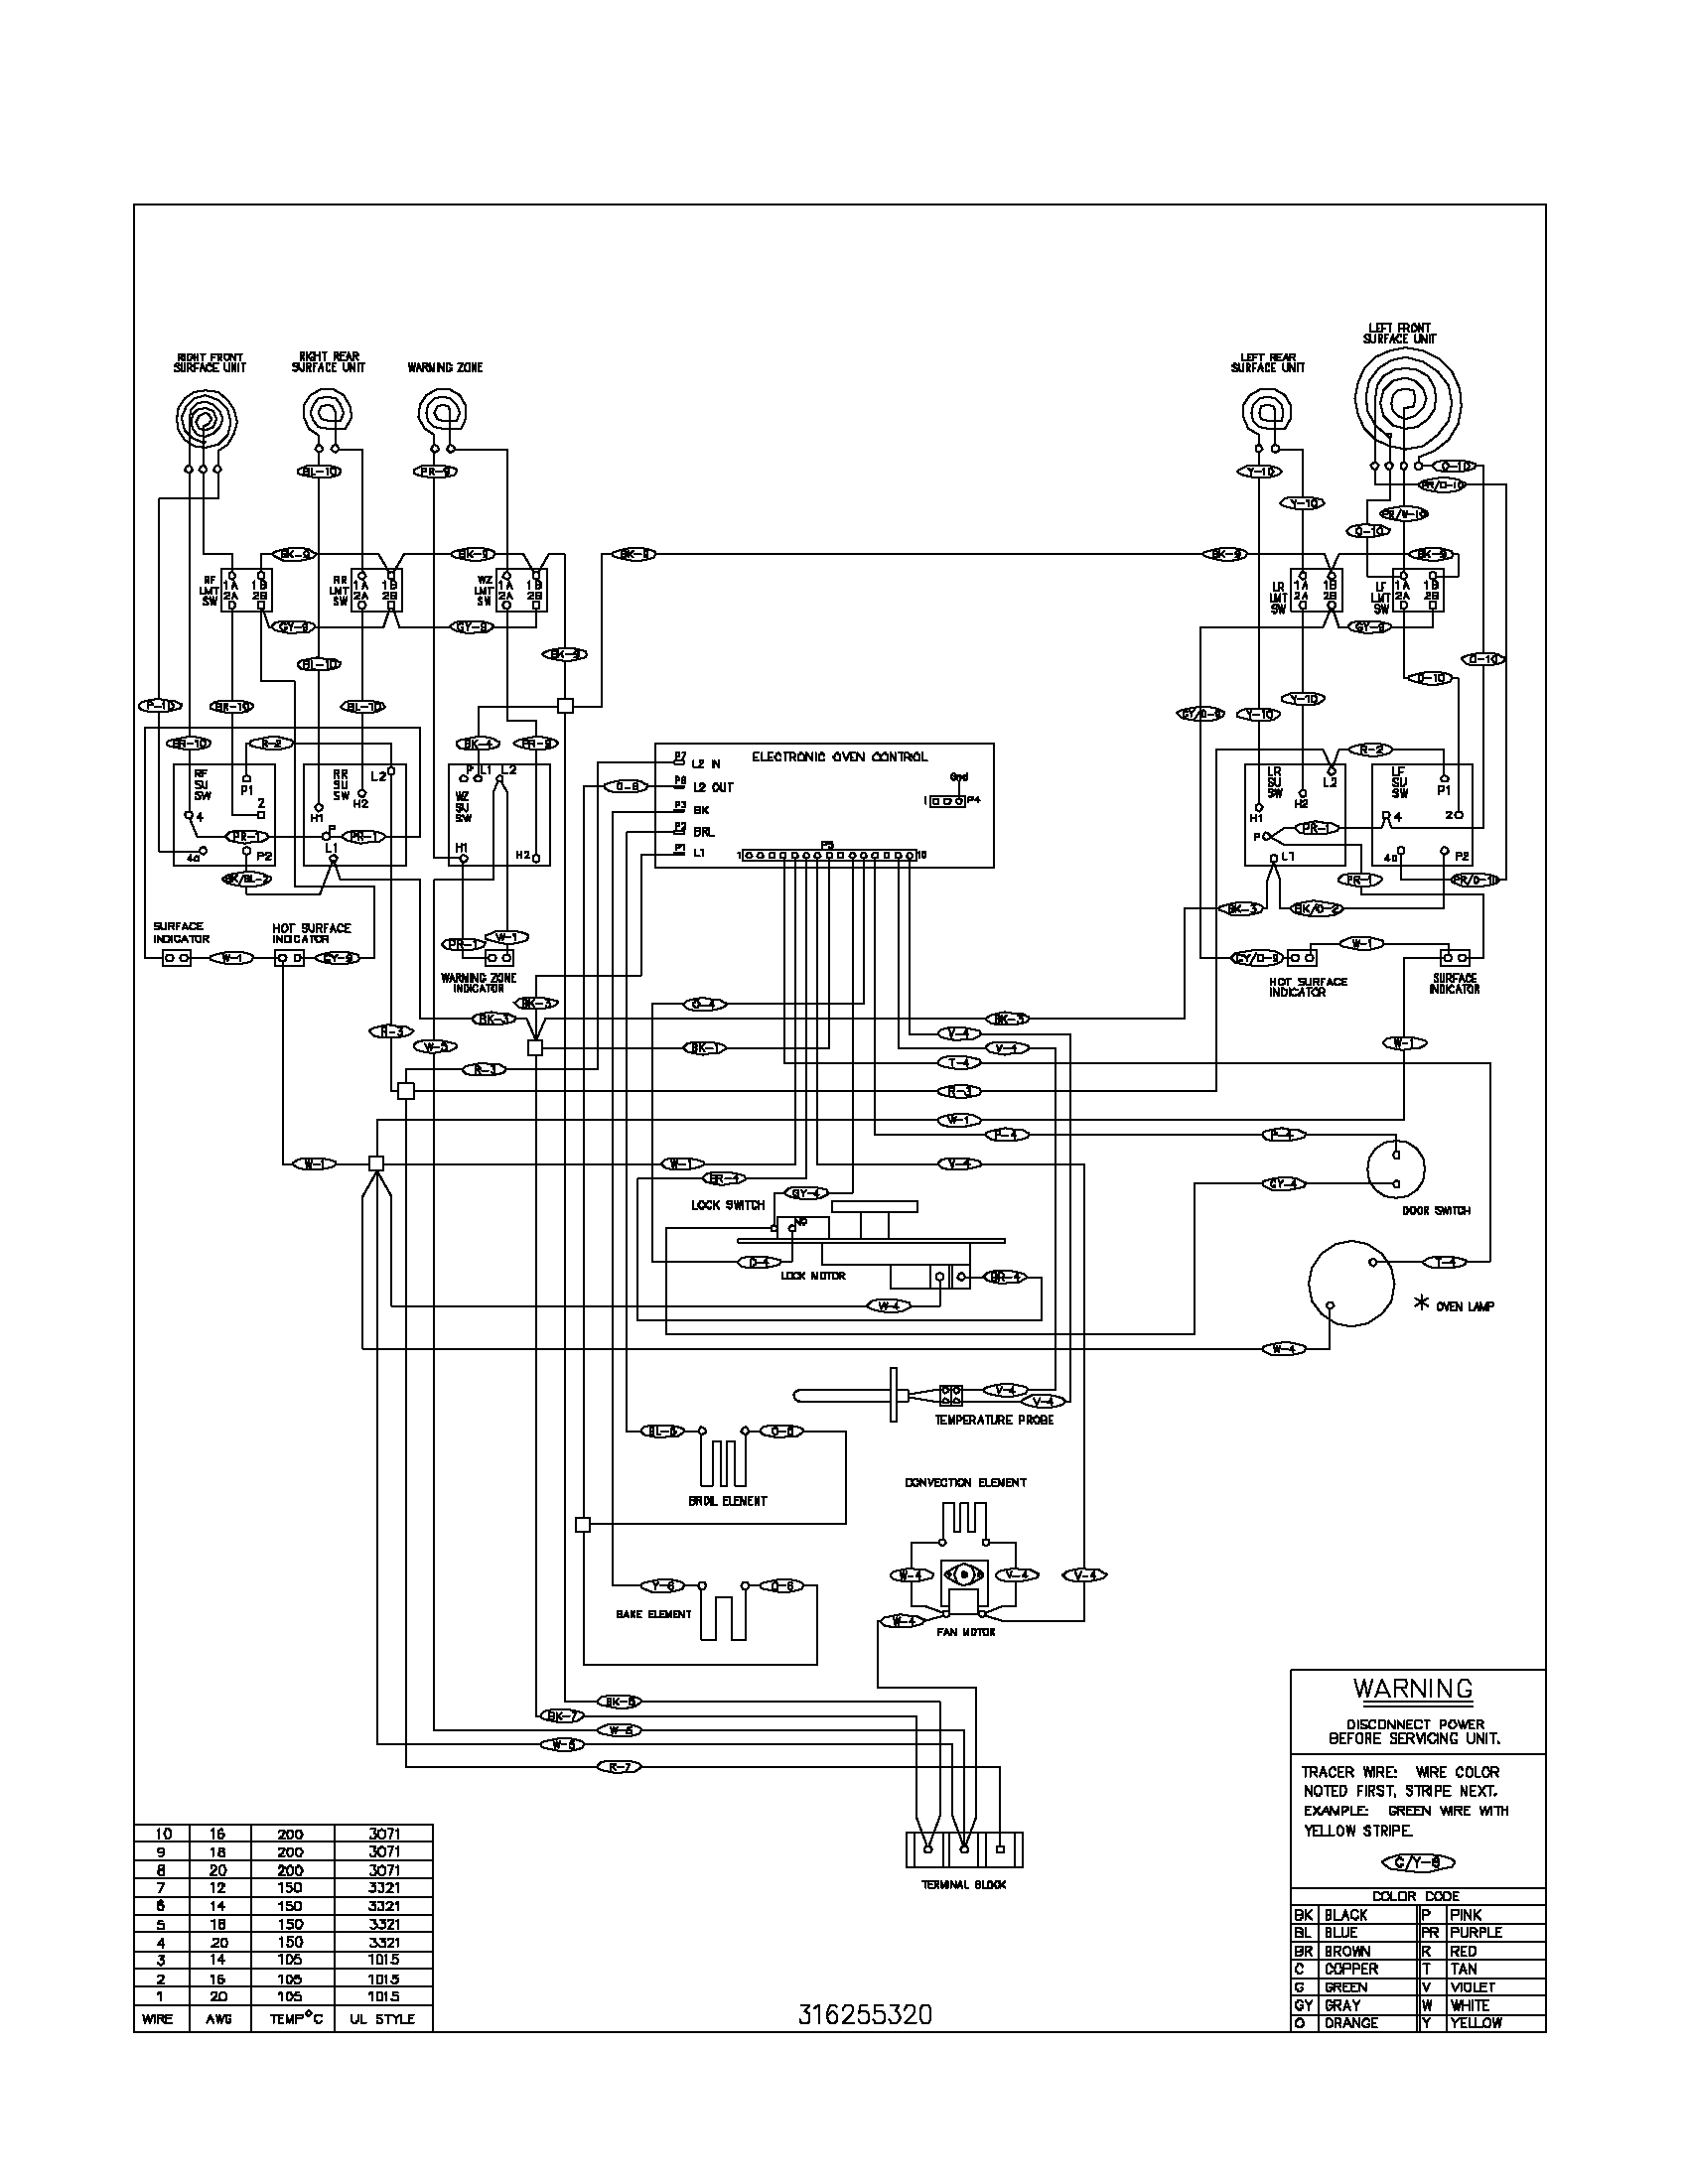 06 jeep commander fuse box diagram